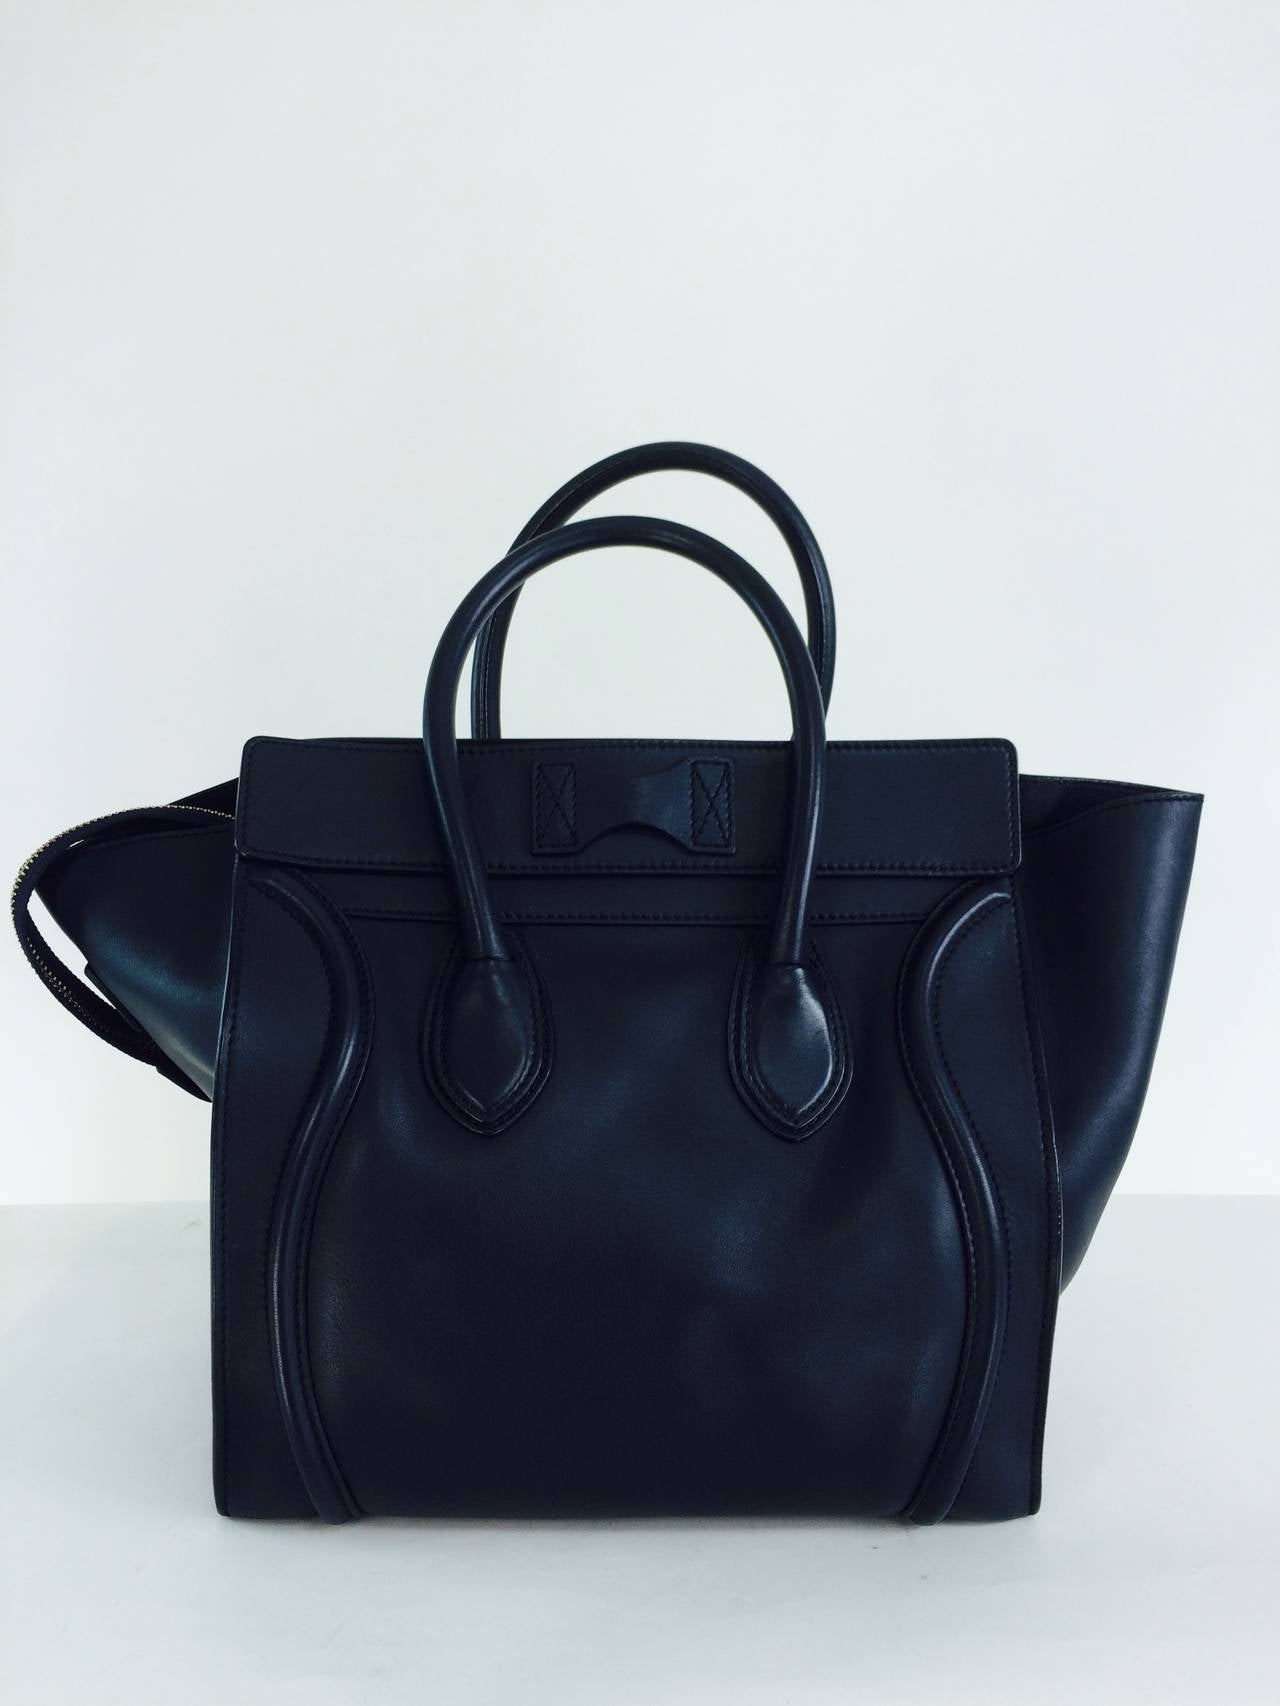 Celine Mini Luggage Tote In Navy Blue Smooth Calfskin Leather With Burnished Gold Hardware